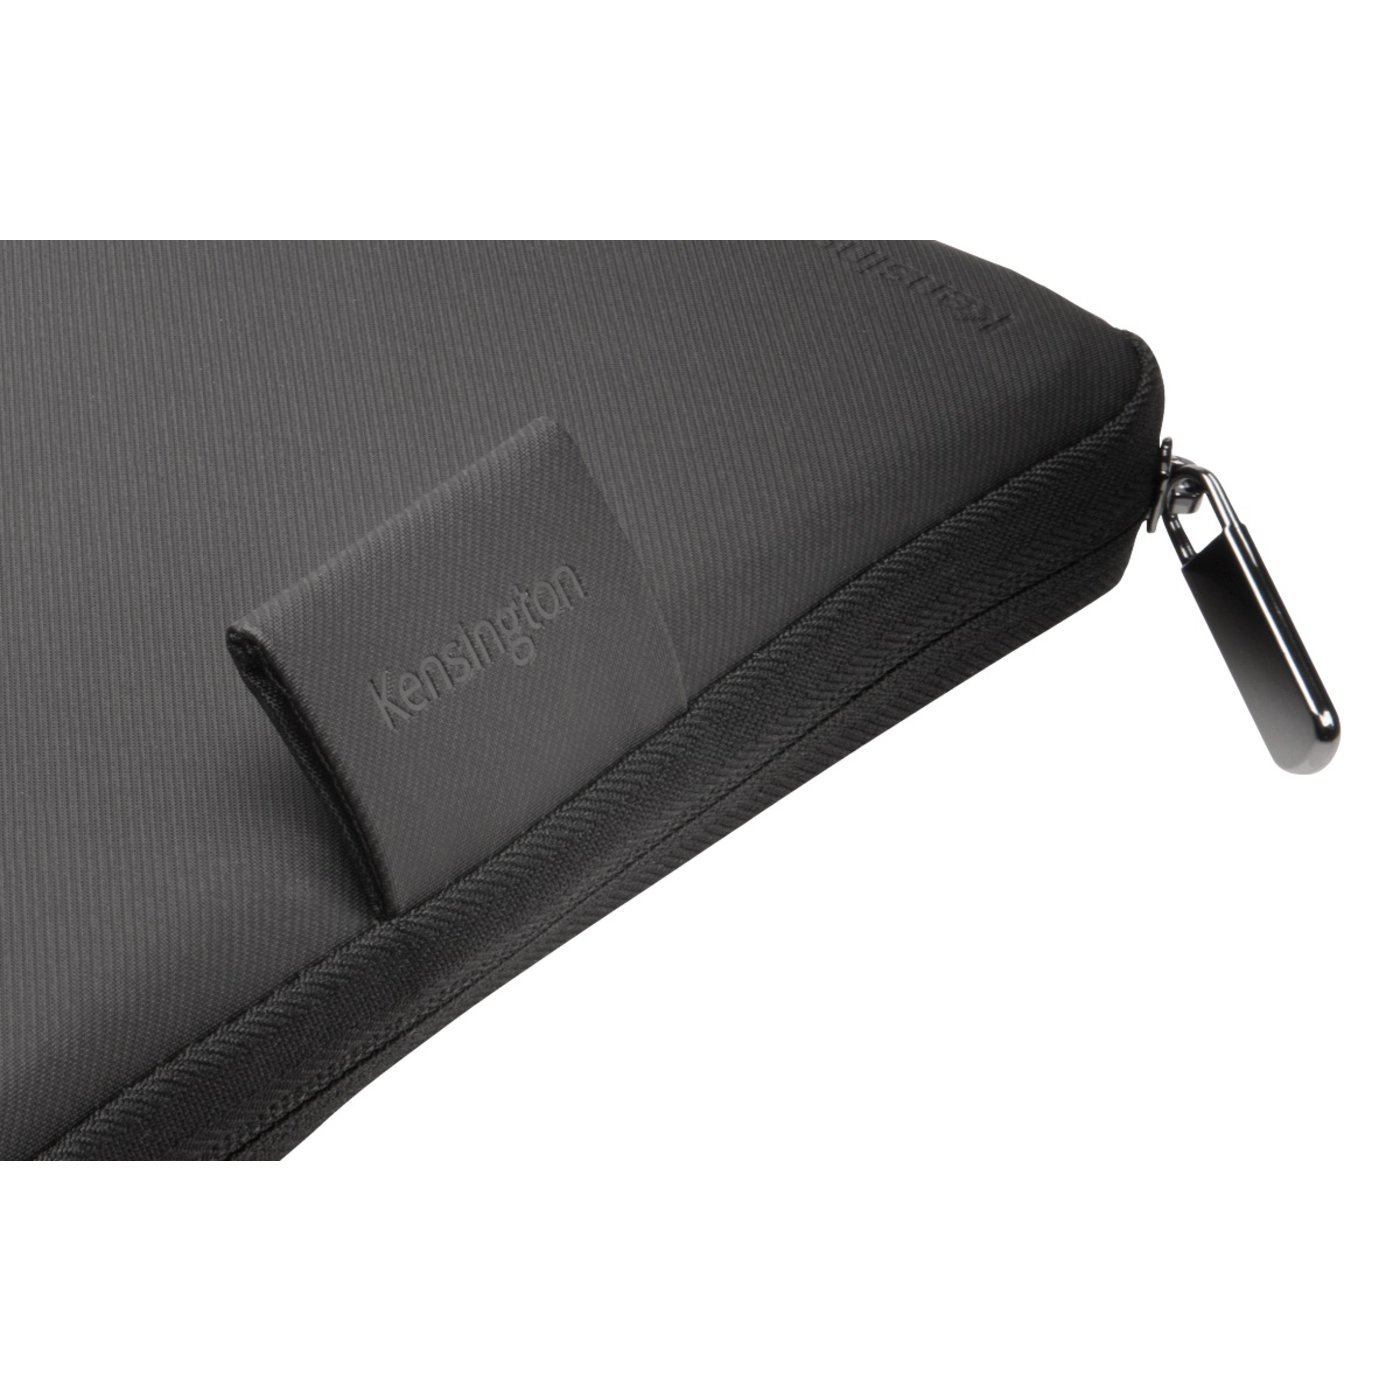 "Kensington LS410 Chromebook Sleeve - 11.6"" image"